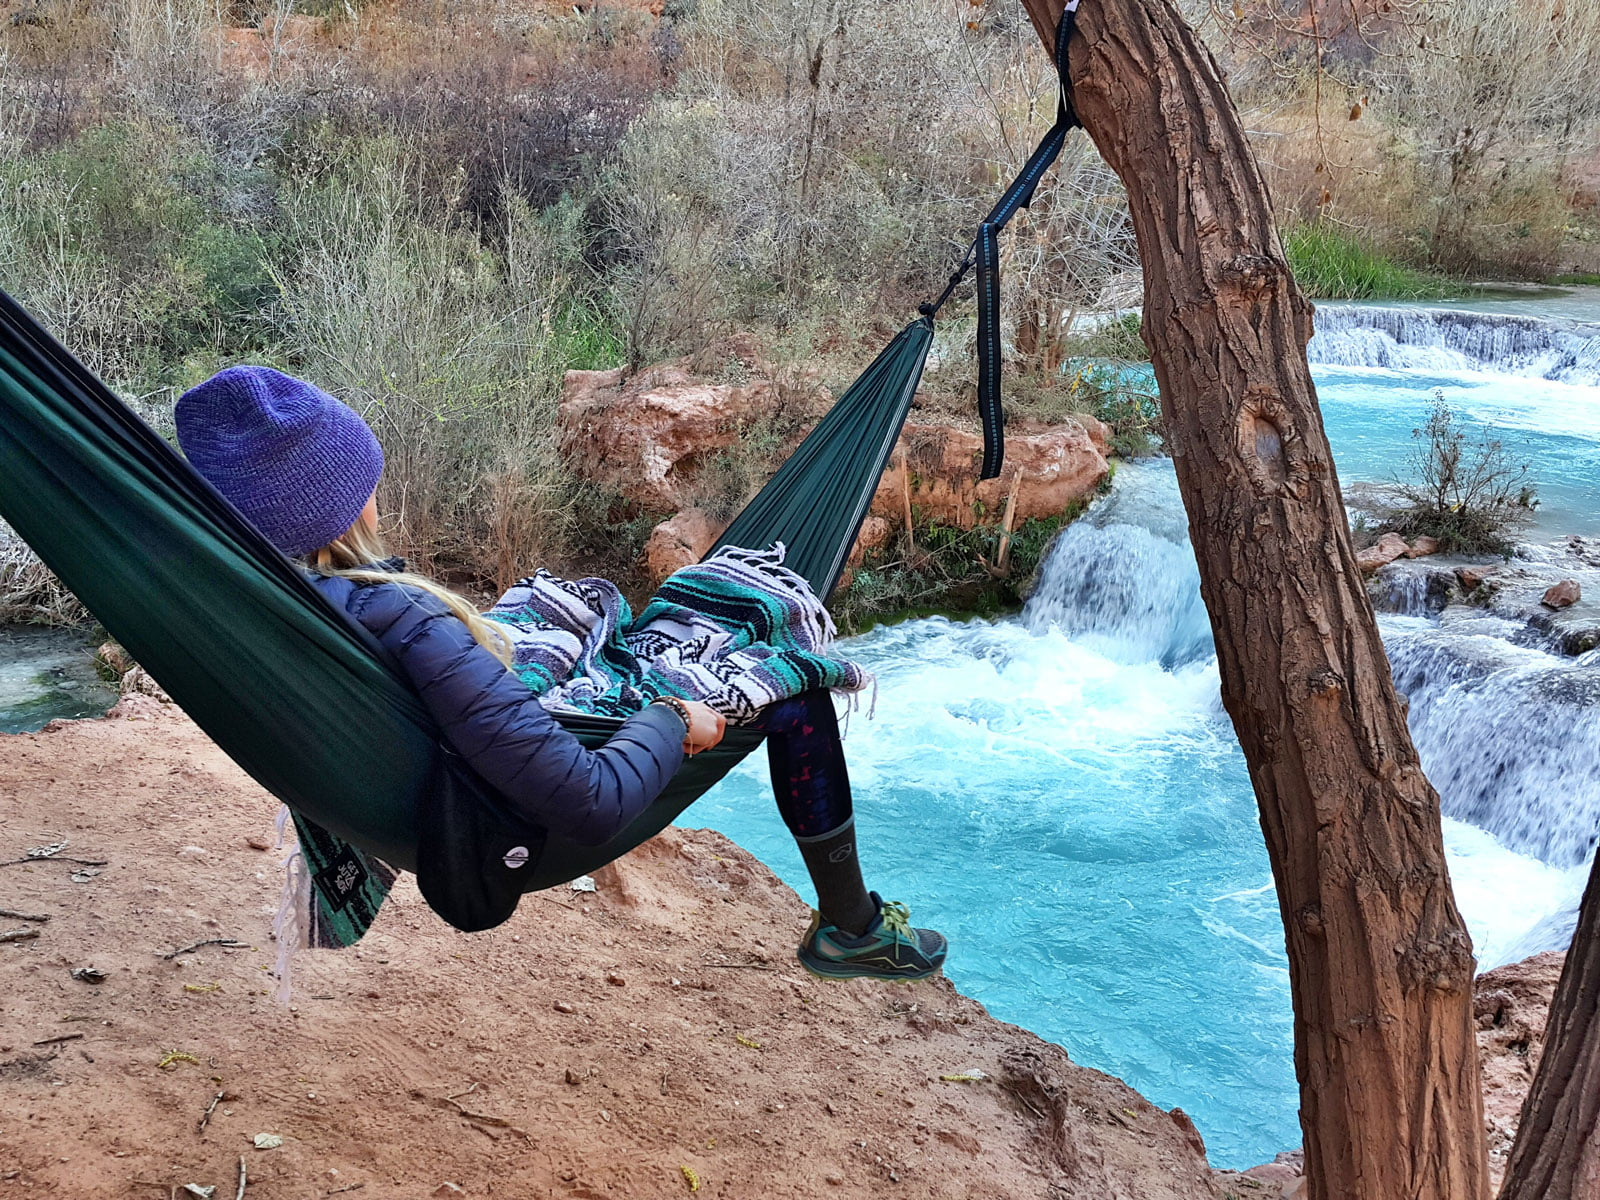 https://cdn.shopify.com/s/files/1/0880/2184/files/10-Tips-For-Hammock-Camping-hang-loose.jpg?9932125722274544687